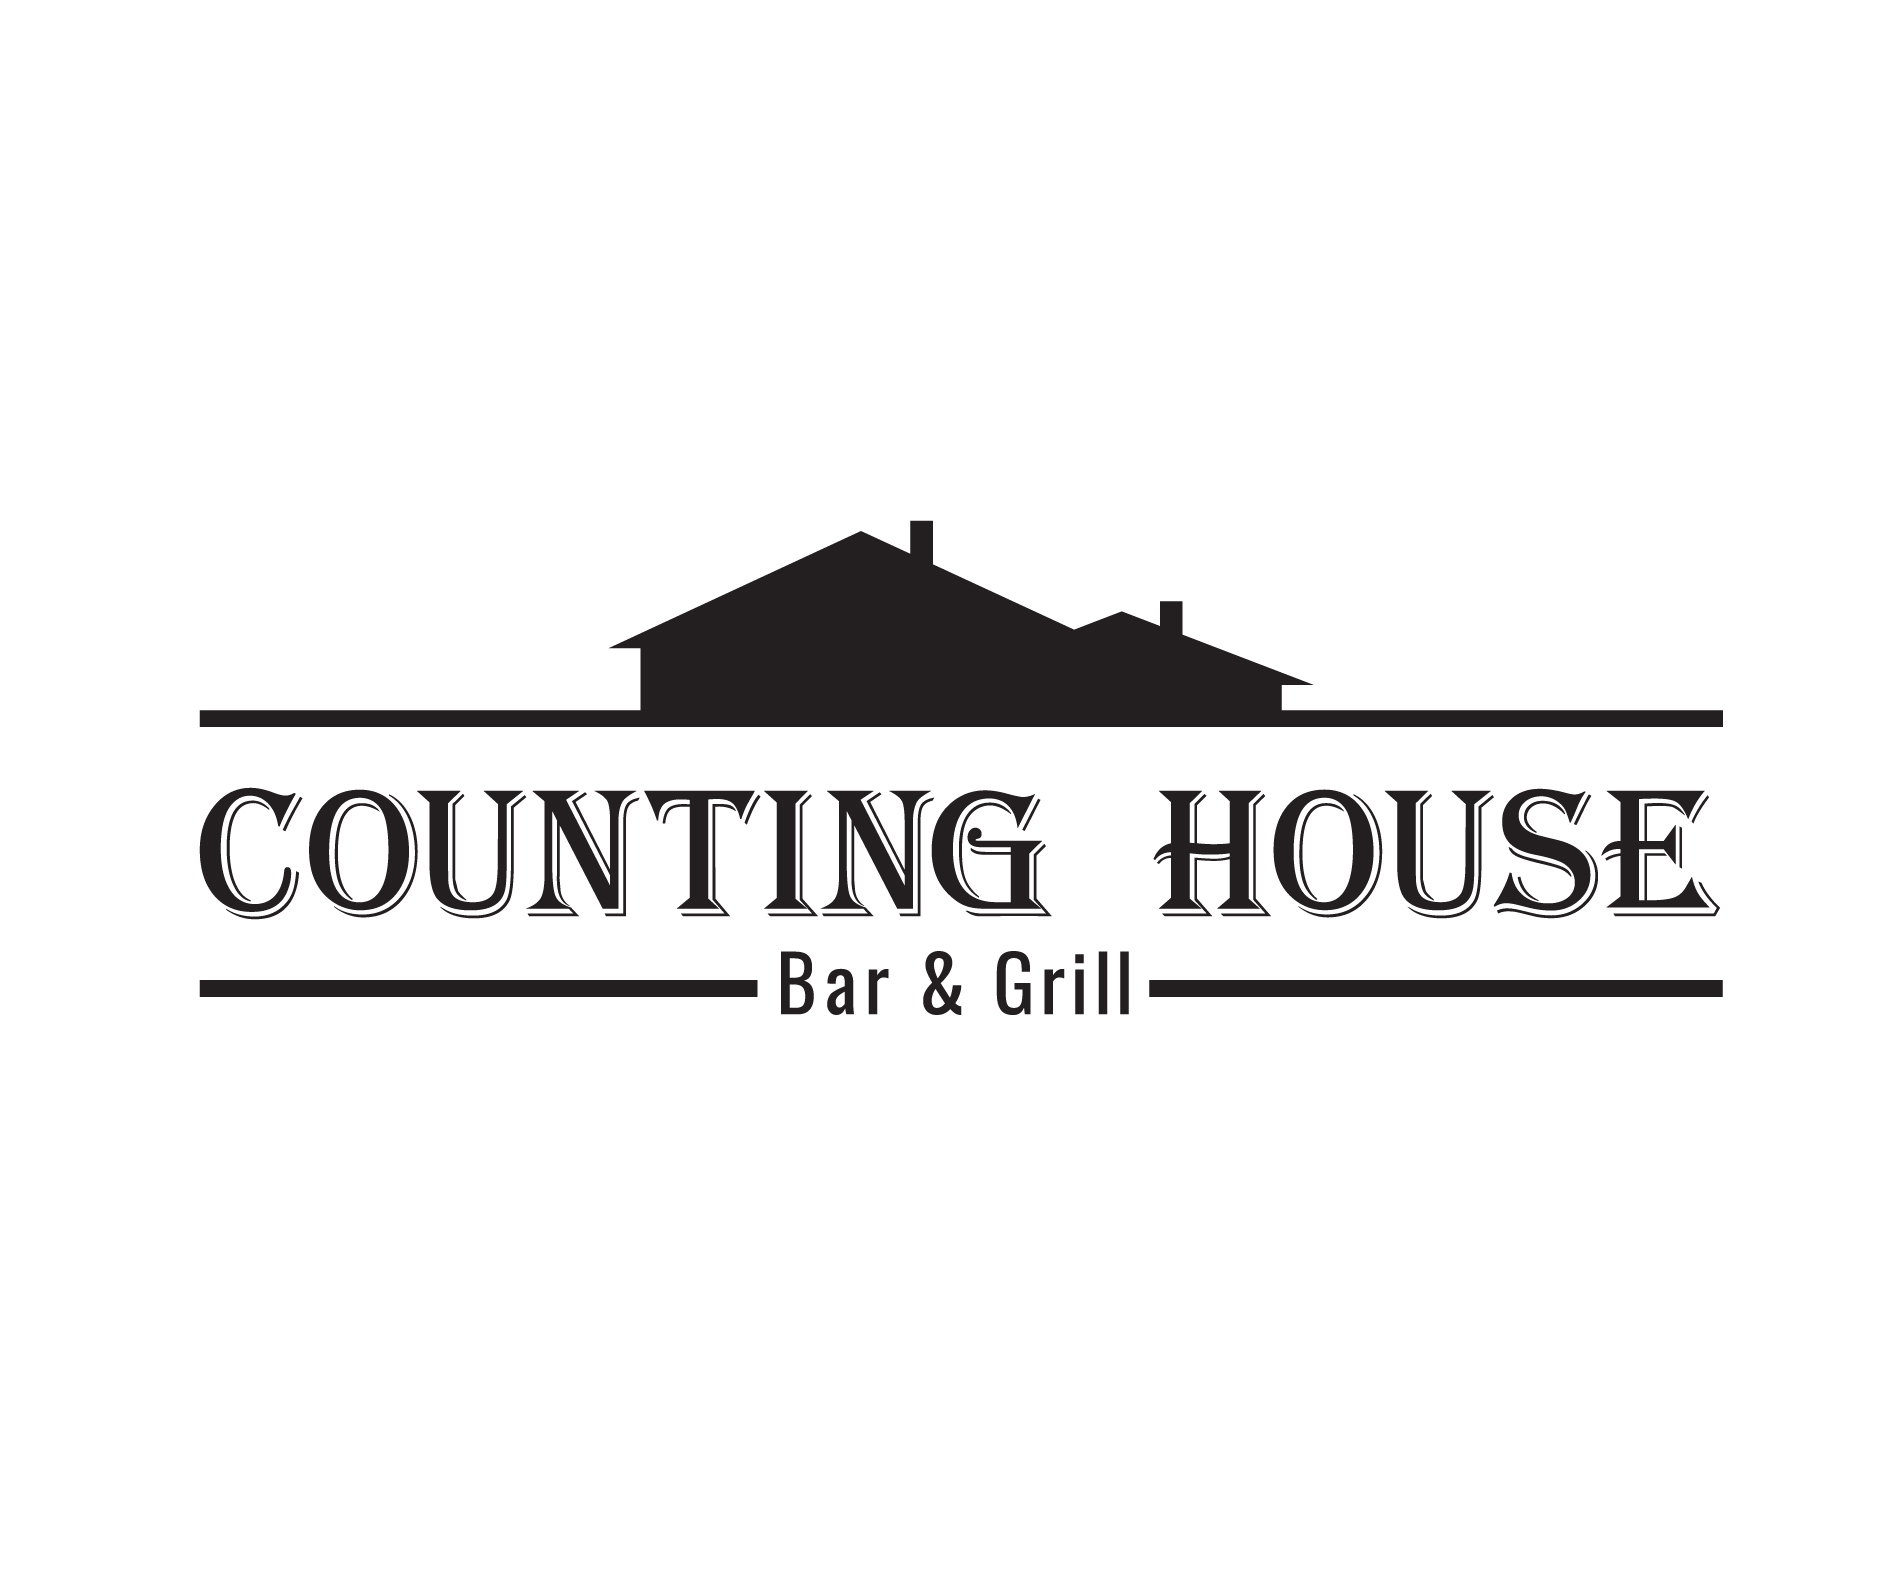 Counting House Bar & Grill (google small)-20.jpg